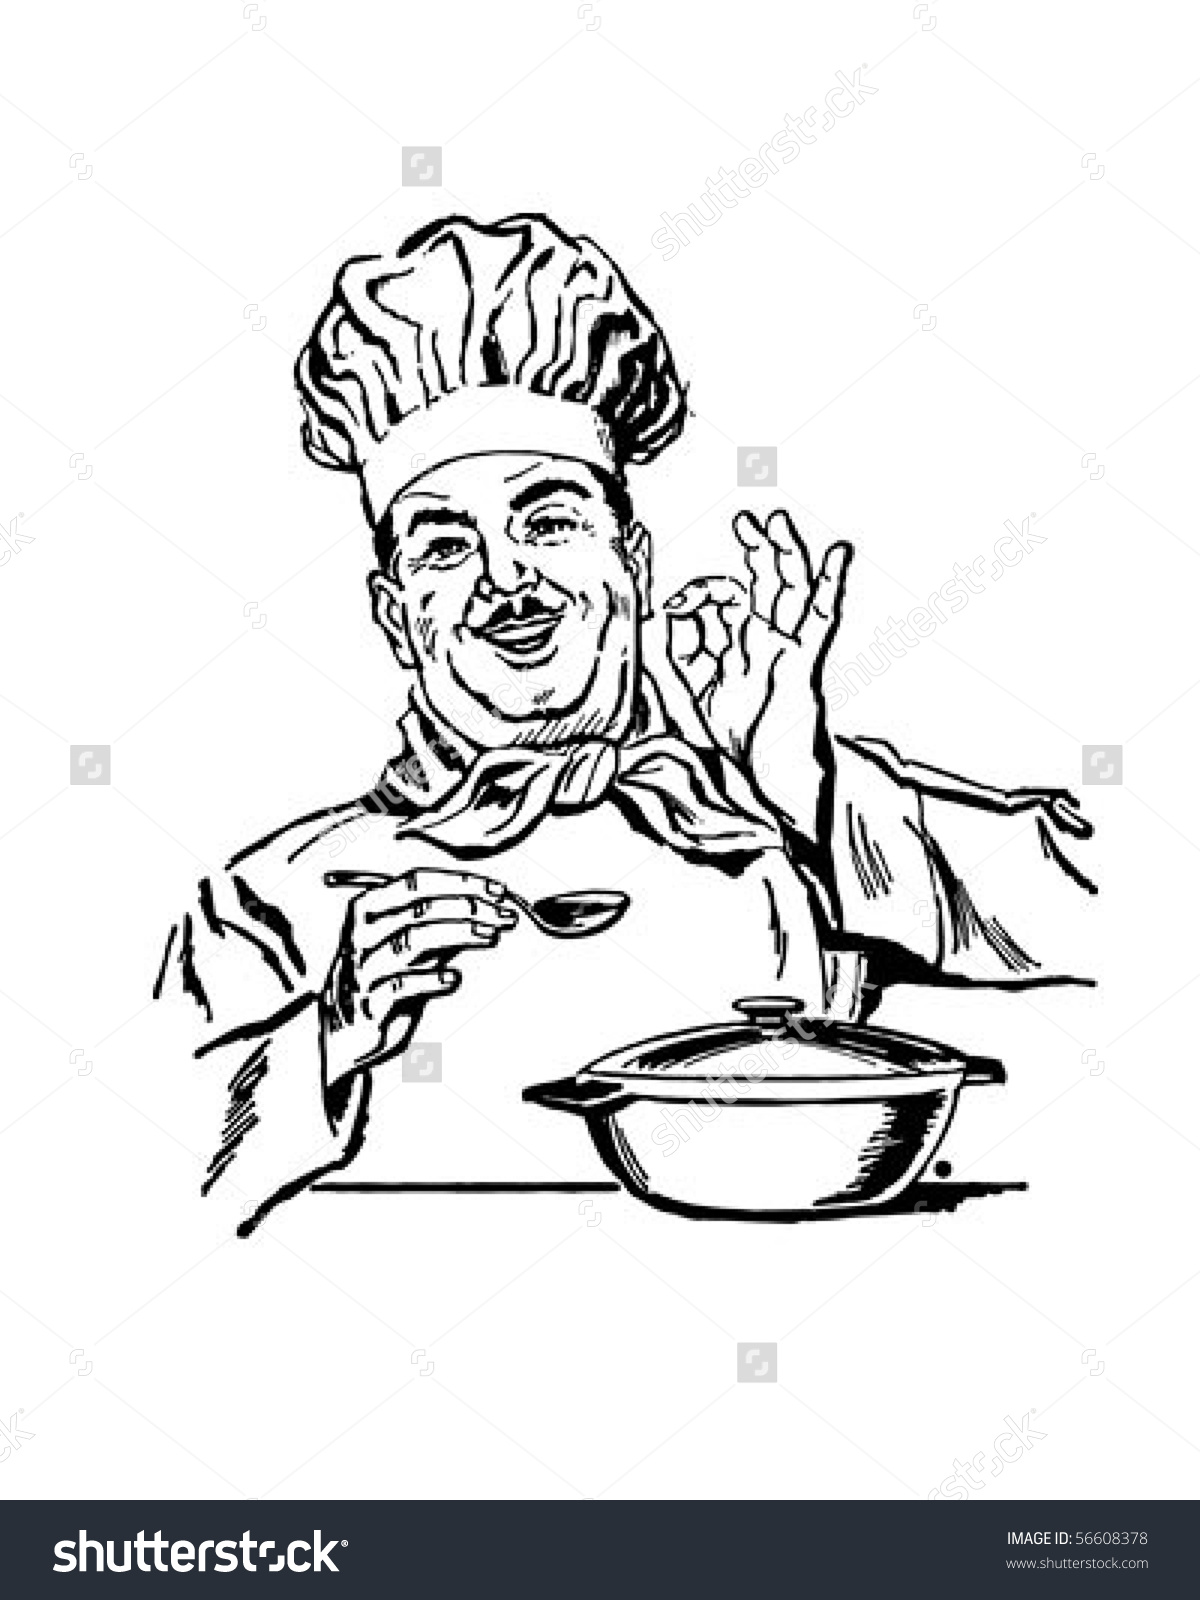 Italian Chef Retro Clip Art Stock Vector 56608378.